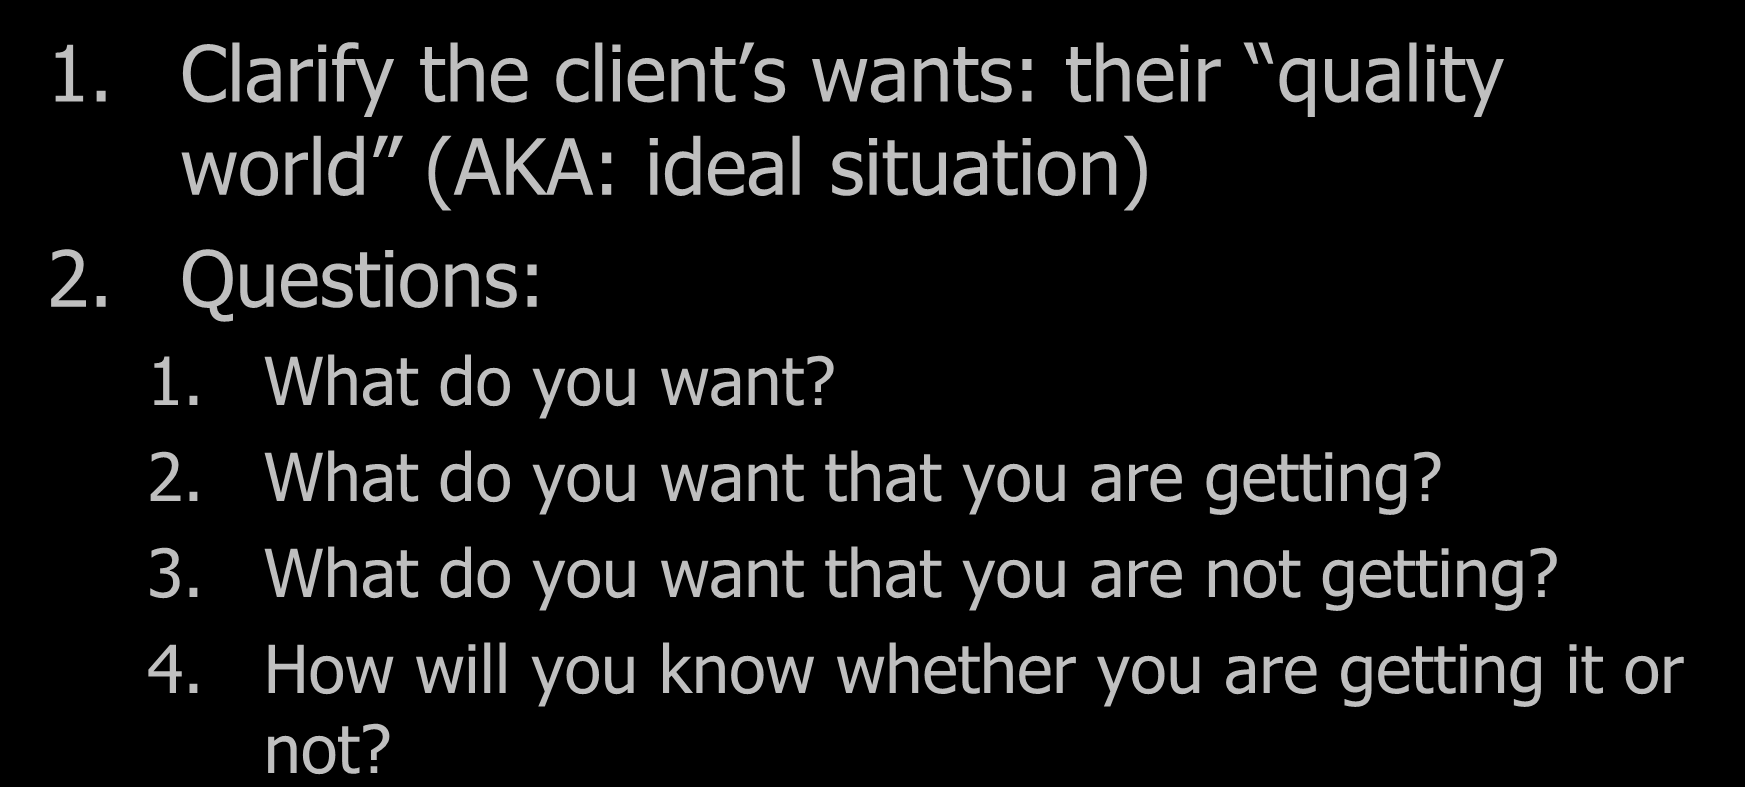 W = Want 1. Clarify the client s wants: their quality world (AKA: ideal situation) 2. Questions: 1. What do you want? 2. What do you want that you are getting?